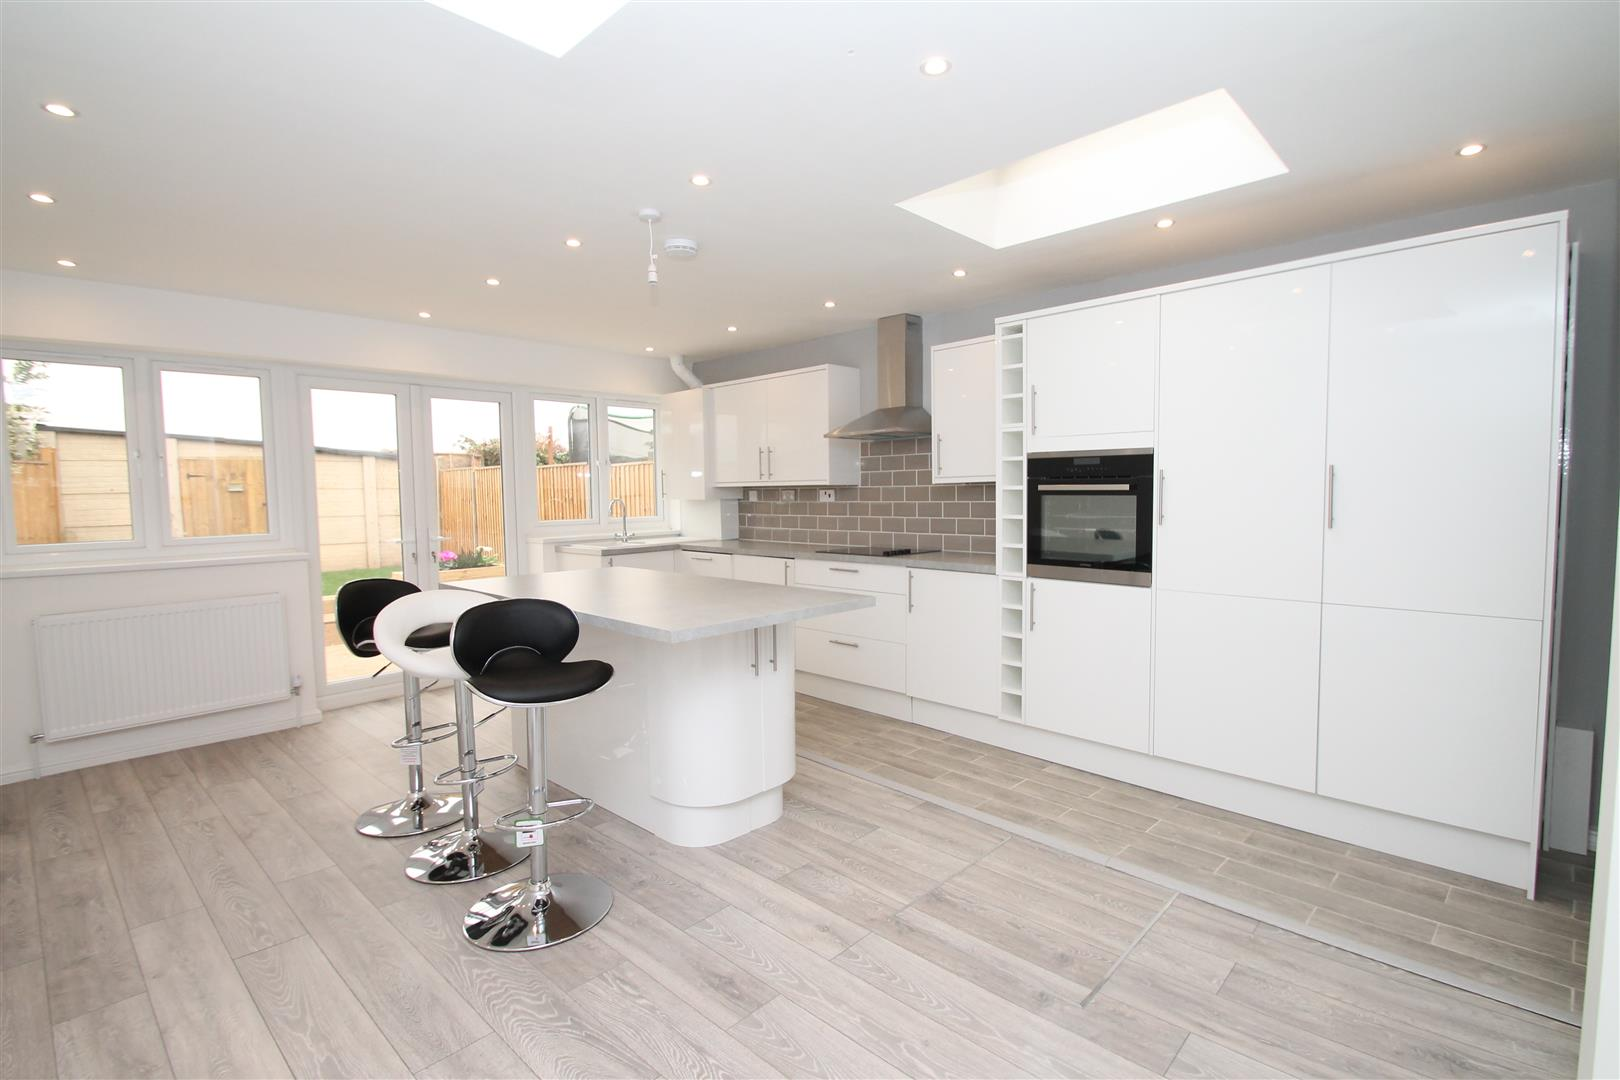 4 Bedrooms House for sale in Rayleigh Road, Palmers Green, London N13